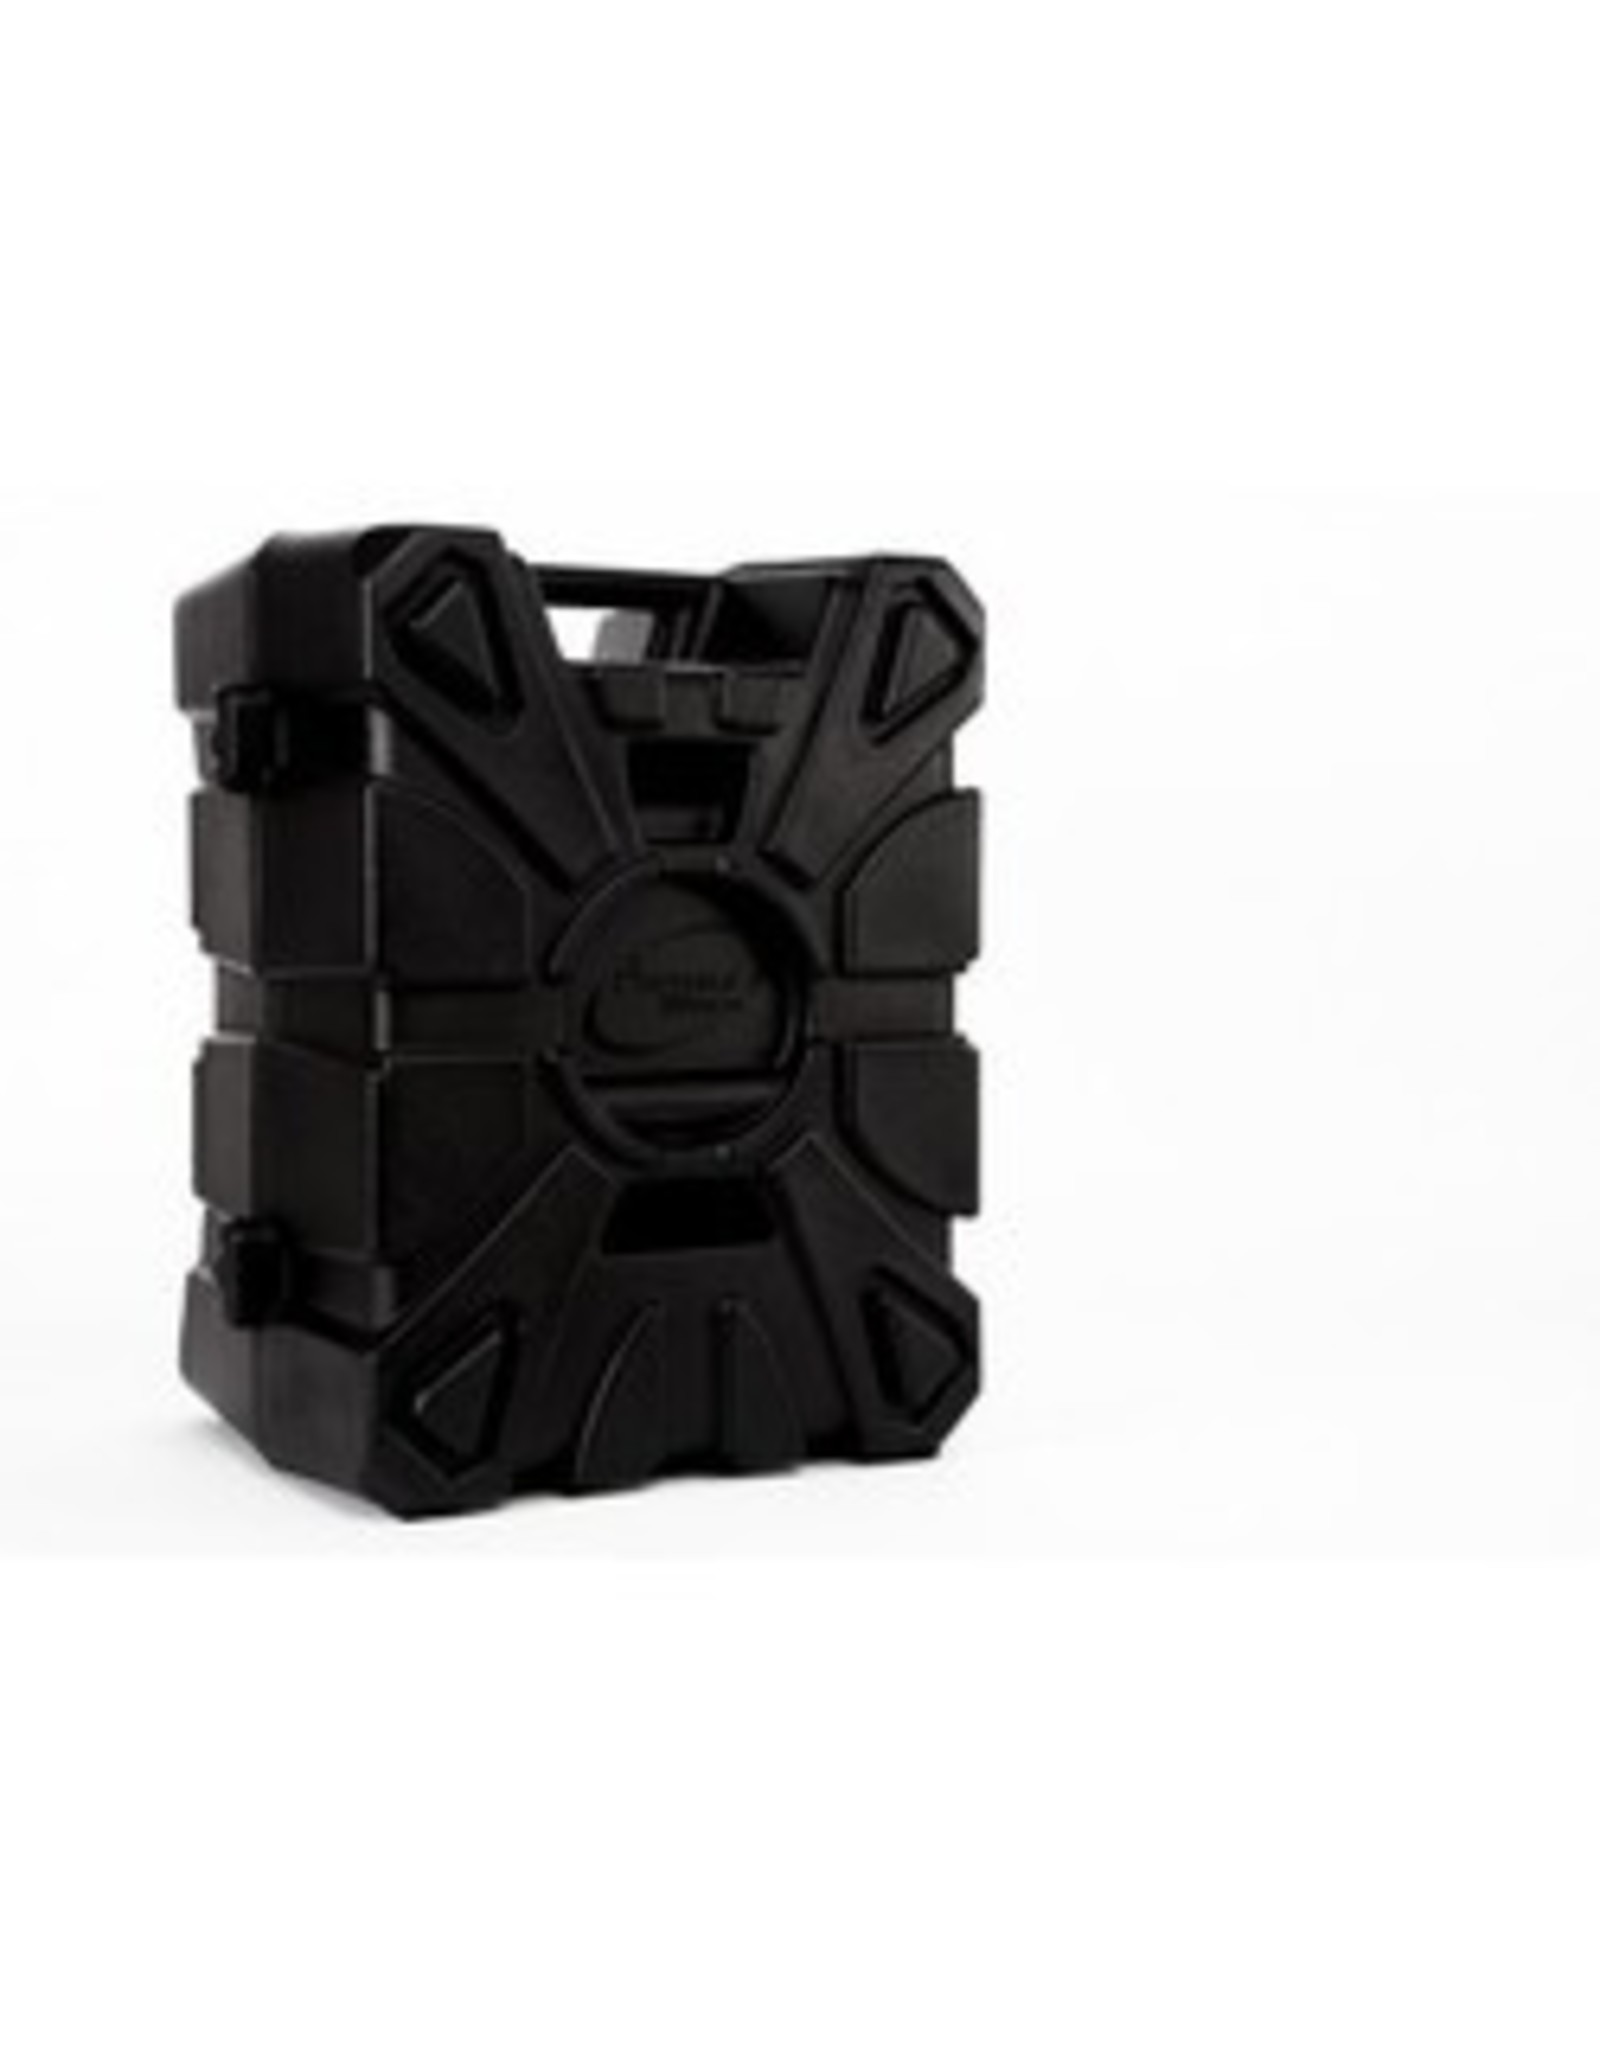 Portable Winch PW MOLDED TRANSPORT CASE FOR PCW3000